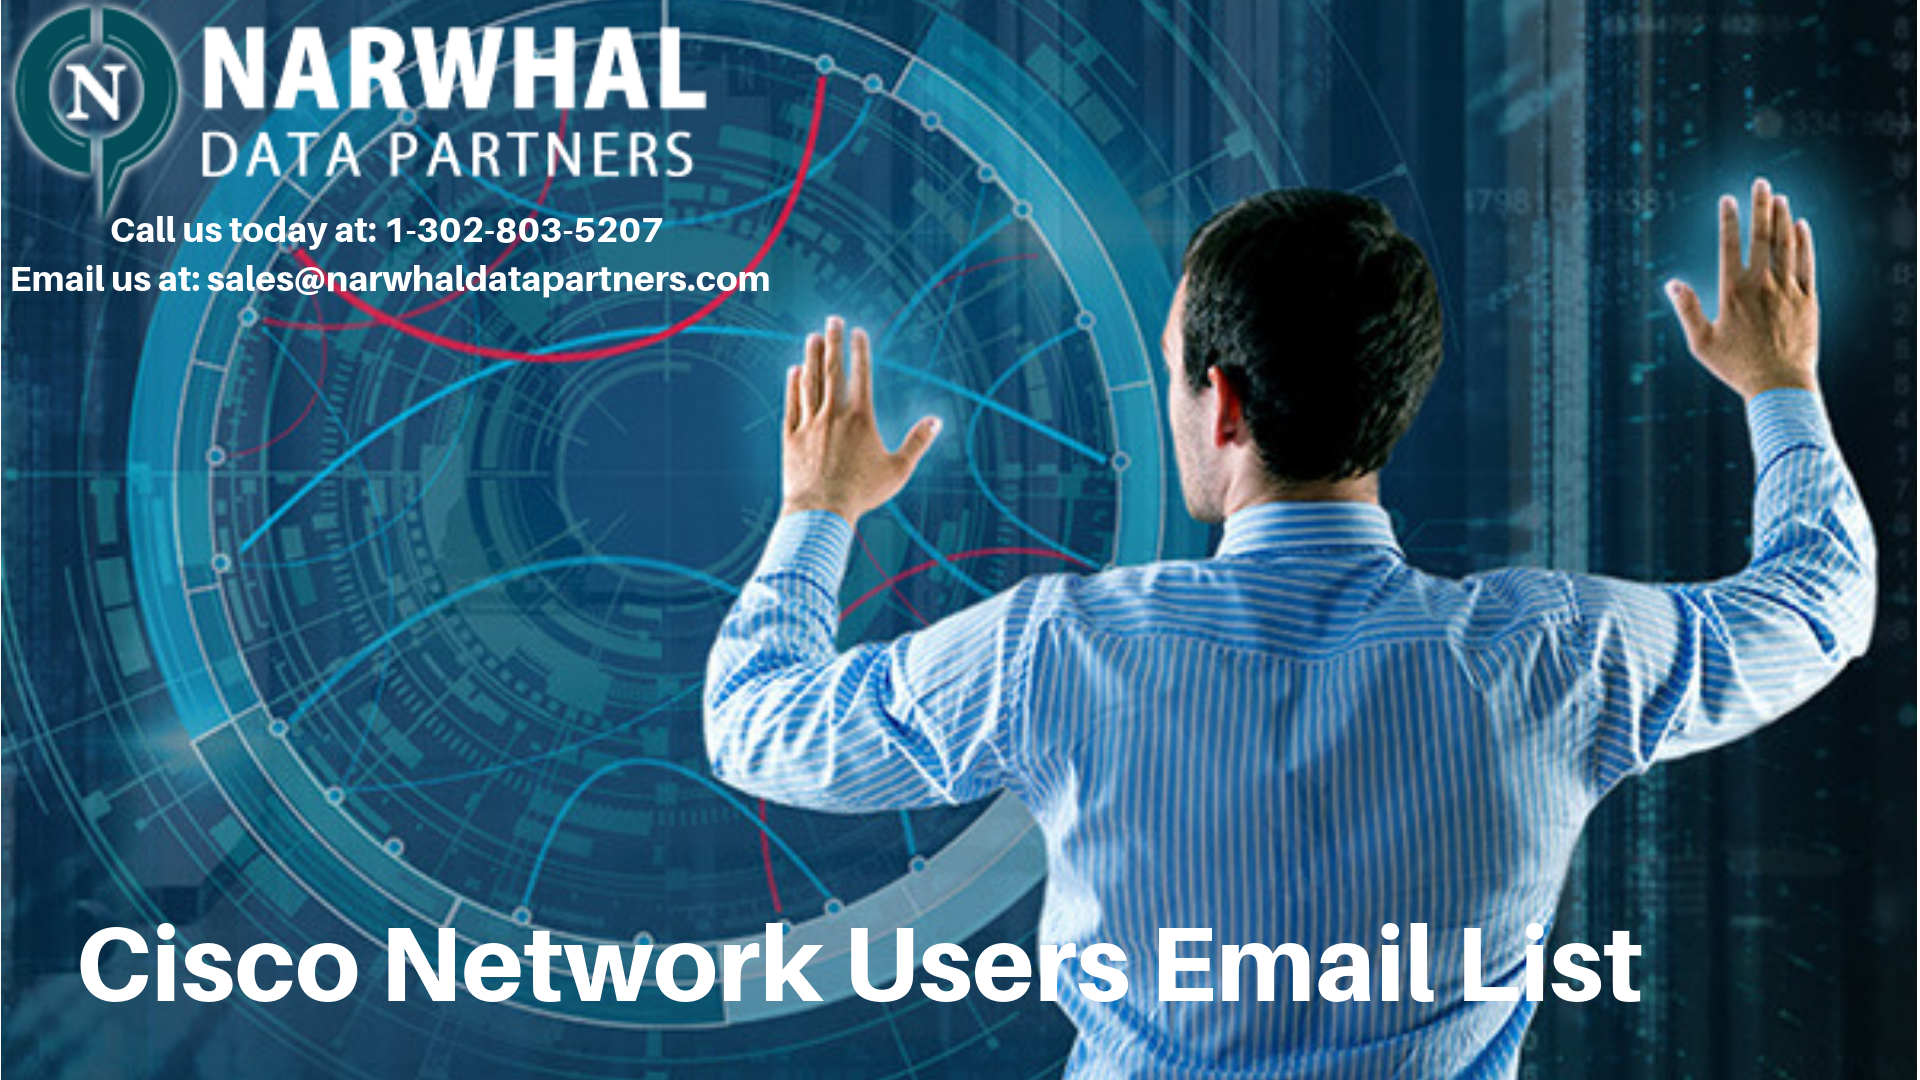 http://narwhaldatapartners.com/cisco-network-users-email-list.html